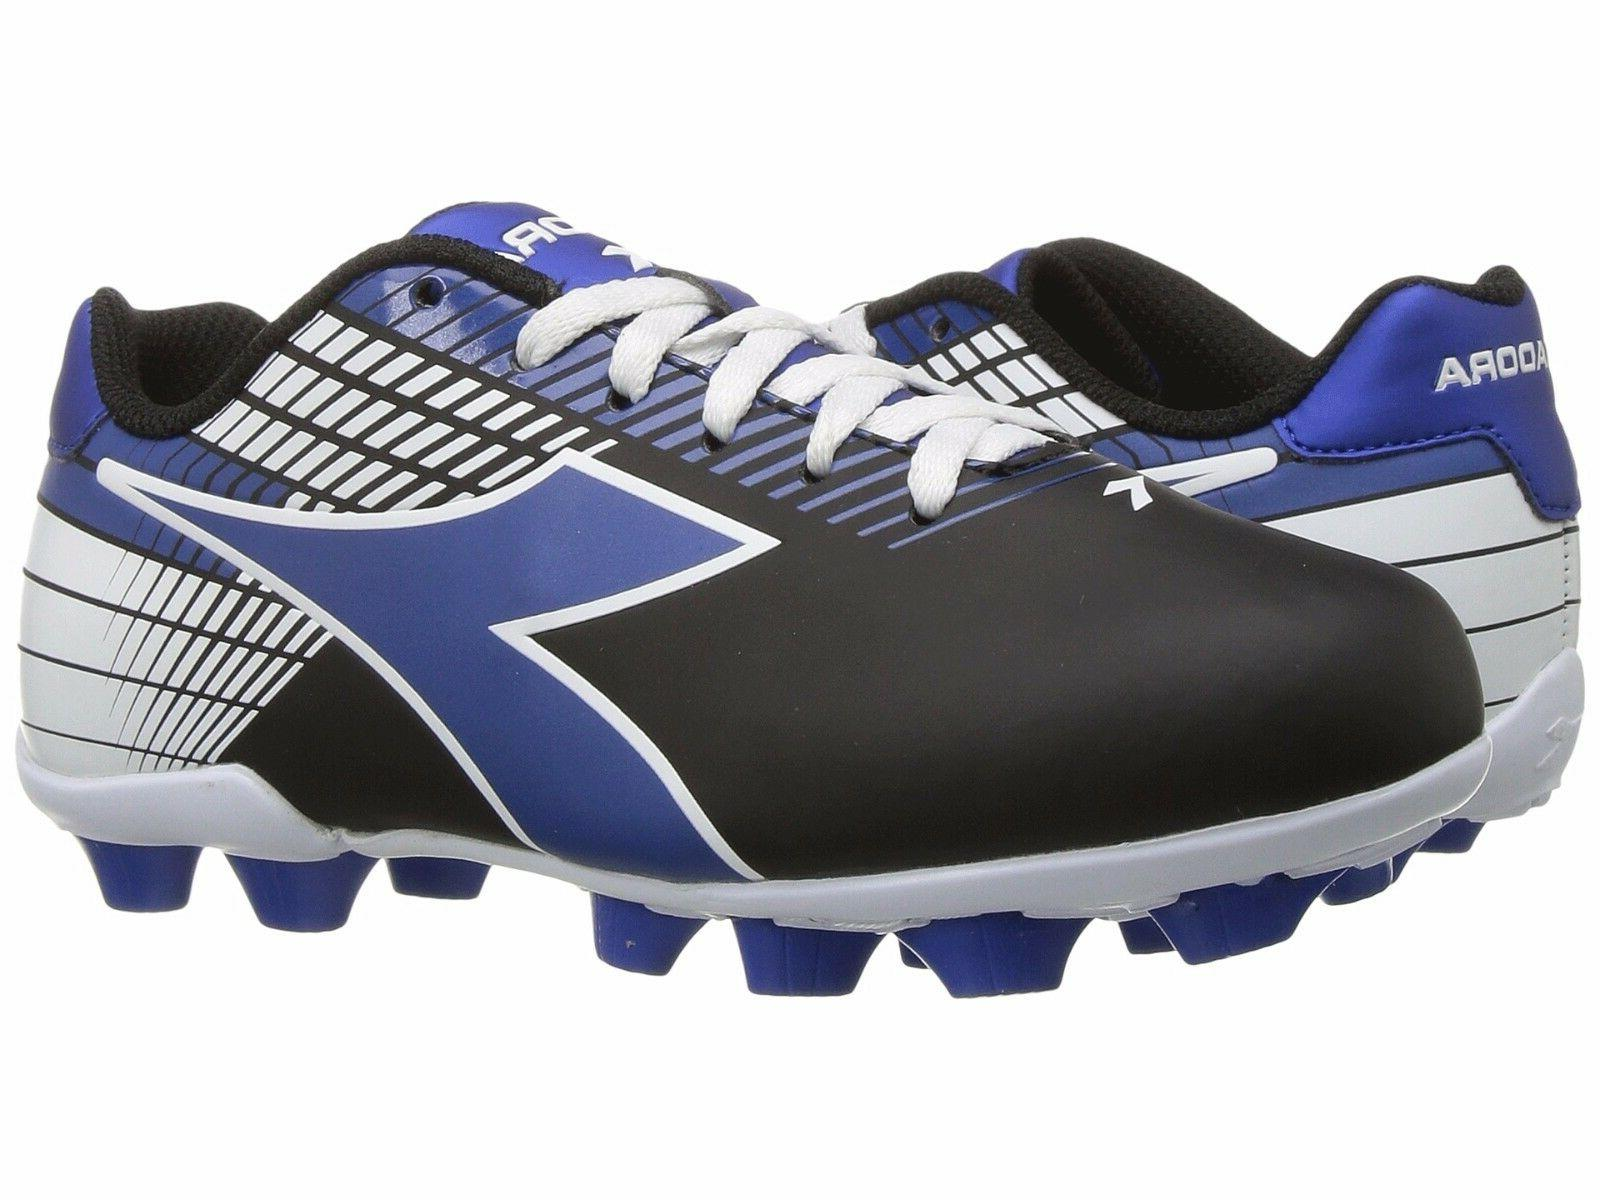 Diadora Ladro MD JR Soccer Cleats Black / Blue / White Toddl